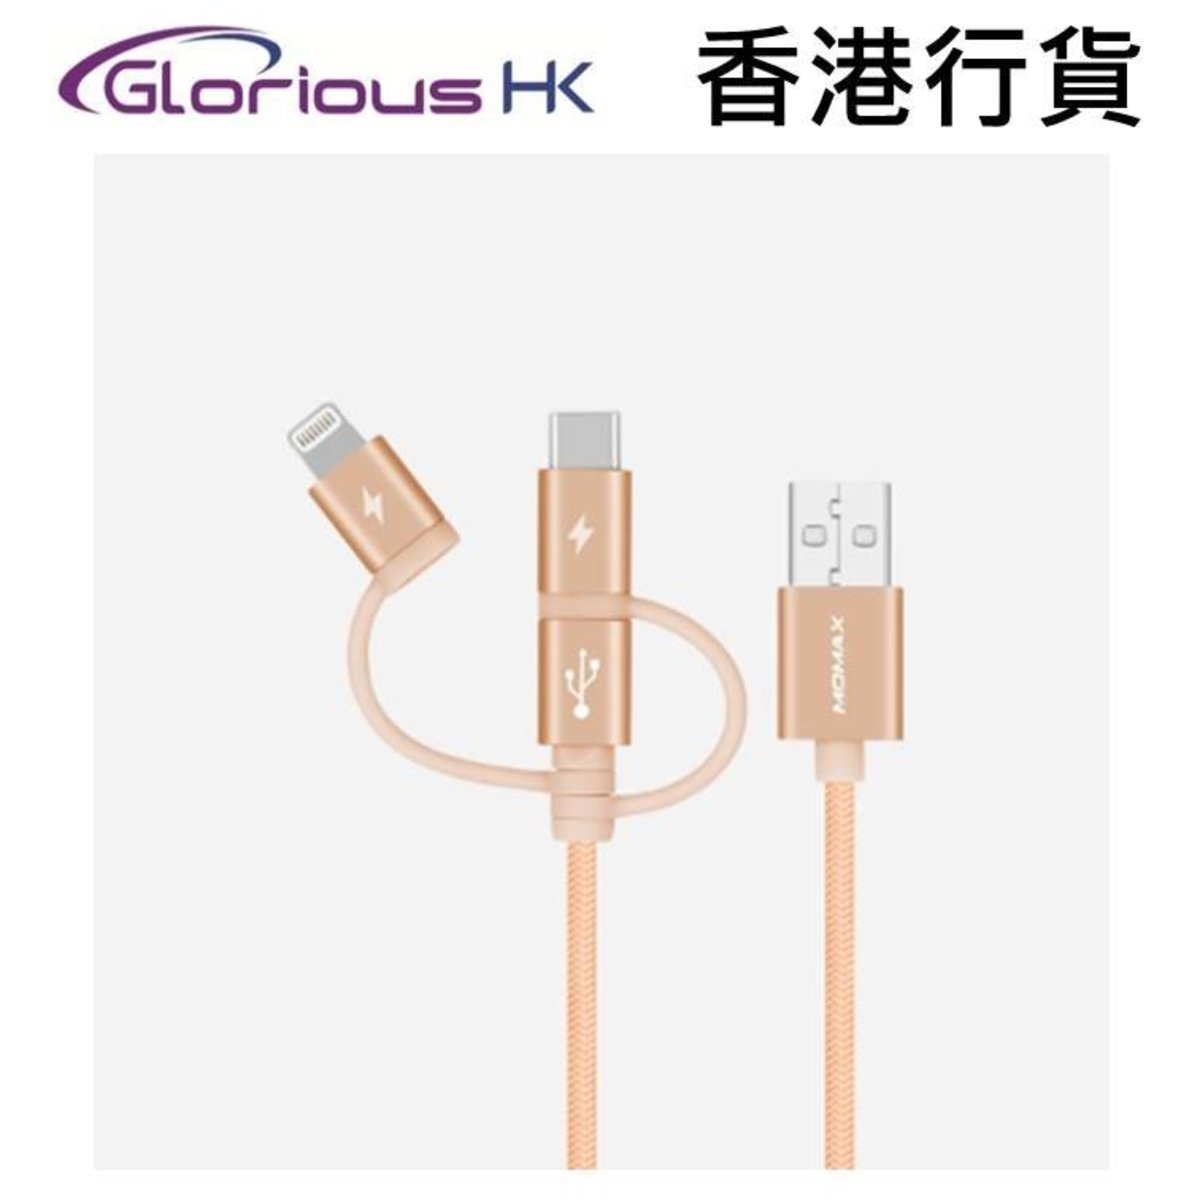 One Link 3-in-1 30cm Cable DX2 Gold